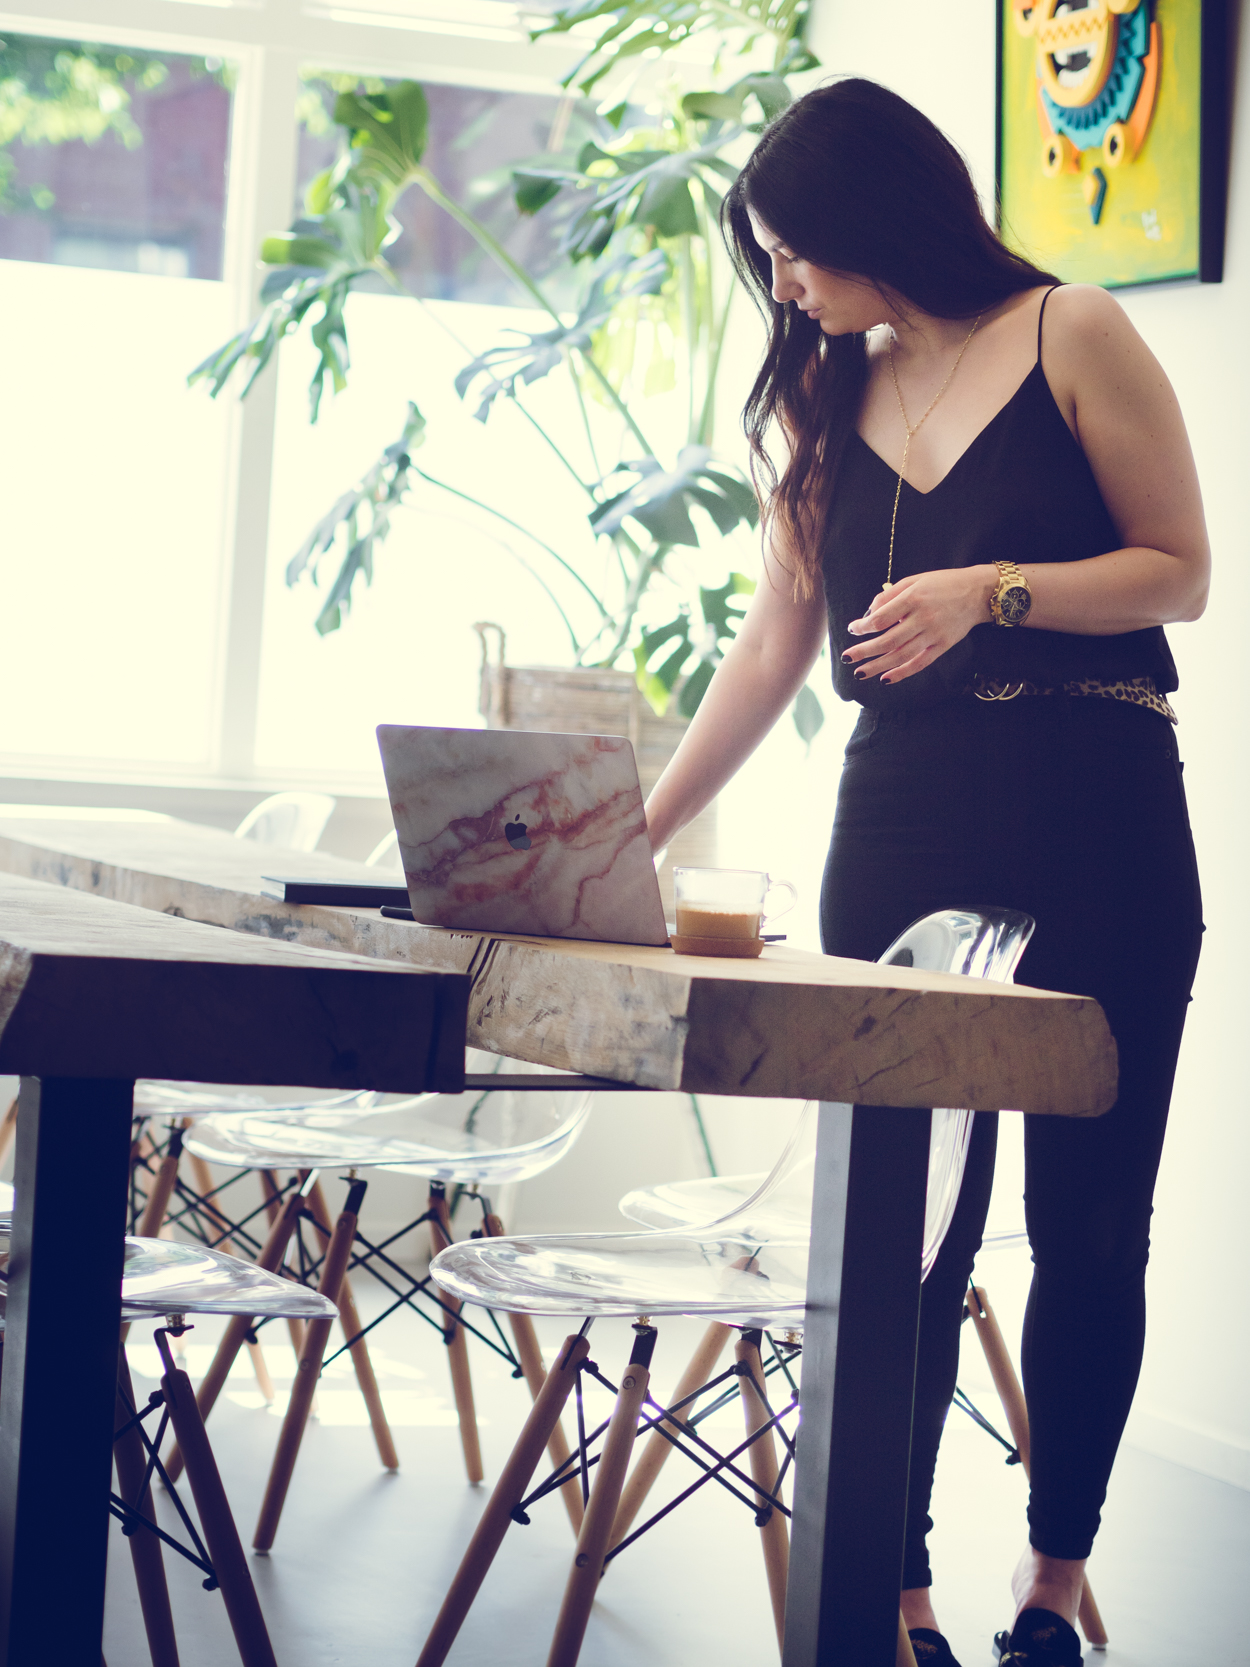 HOW TO COMBINE YOUR SIDE HUSTLE WITH A JOB AND OTHER RESPONSIBILITIES | THE CHIC ITALIAN | My personal tips on having a successful side hustle that brings you joy